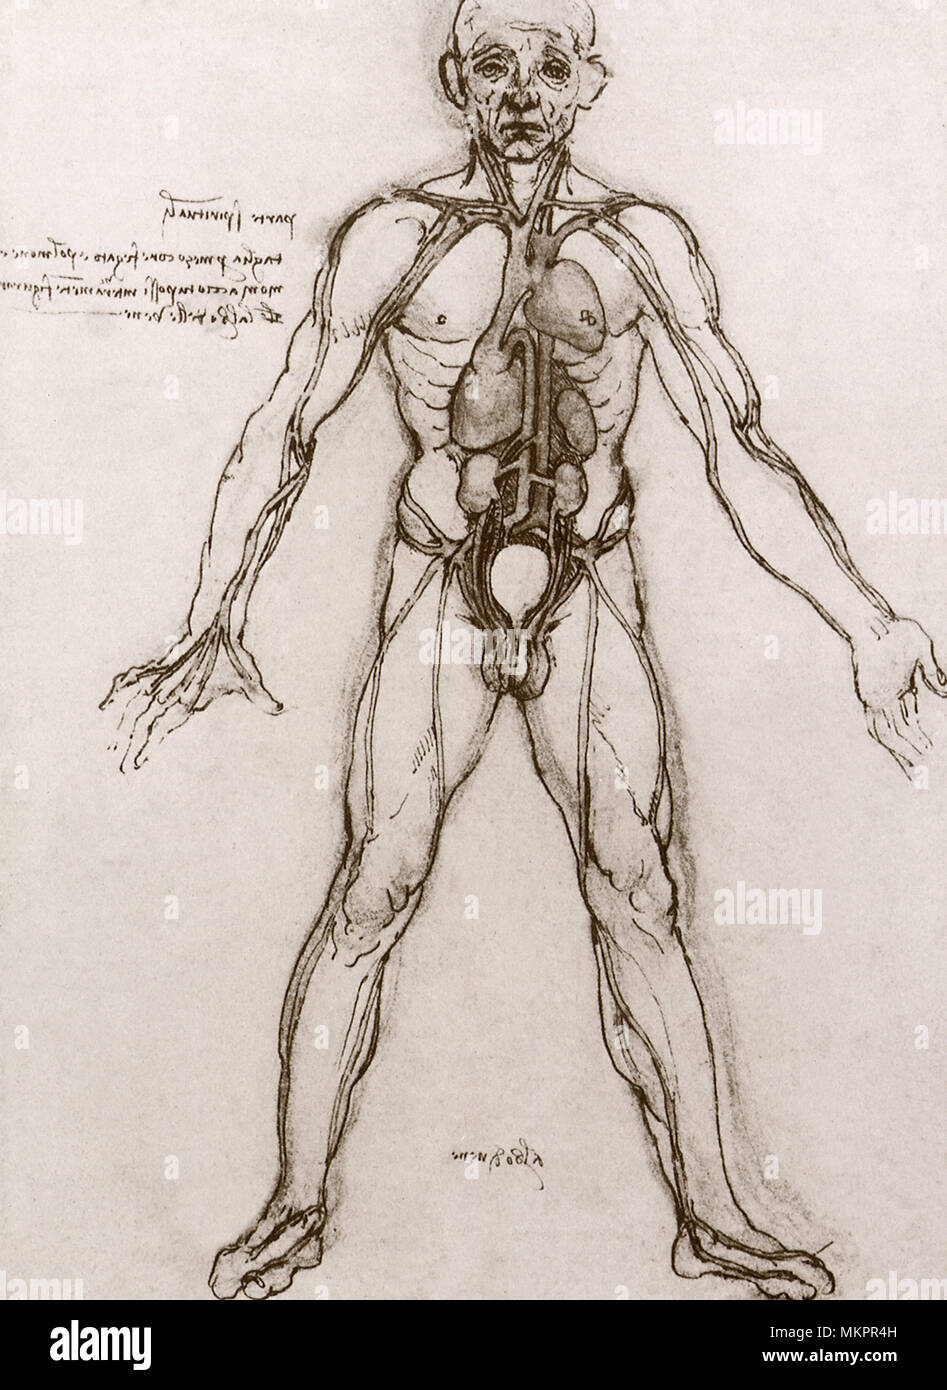 Anatomical study the heart vital organs and main arteries stock anatomical study the heart vital organs and main arteries ccuart Choice Image